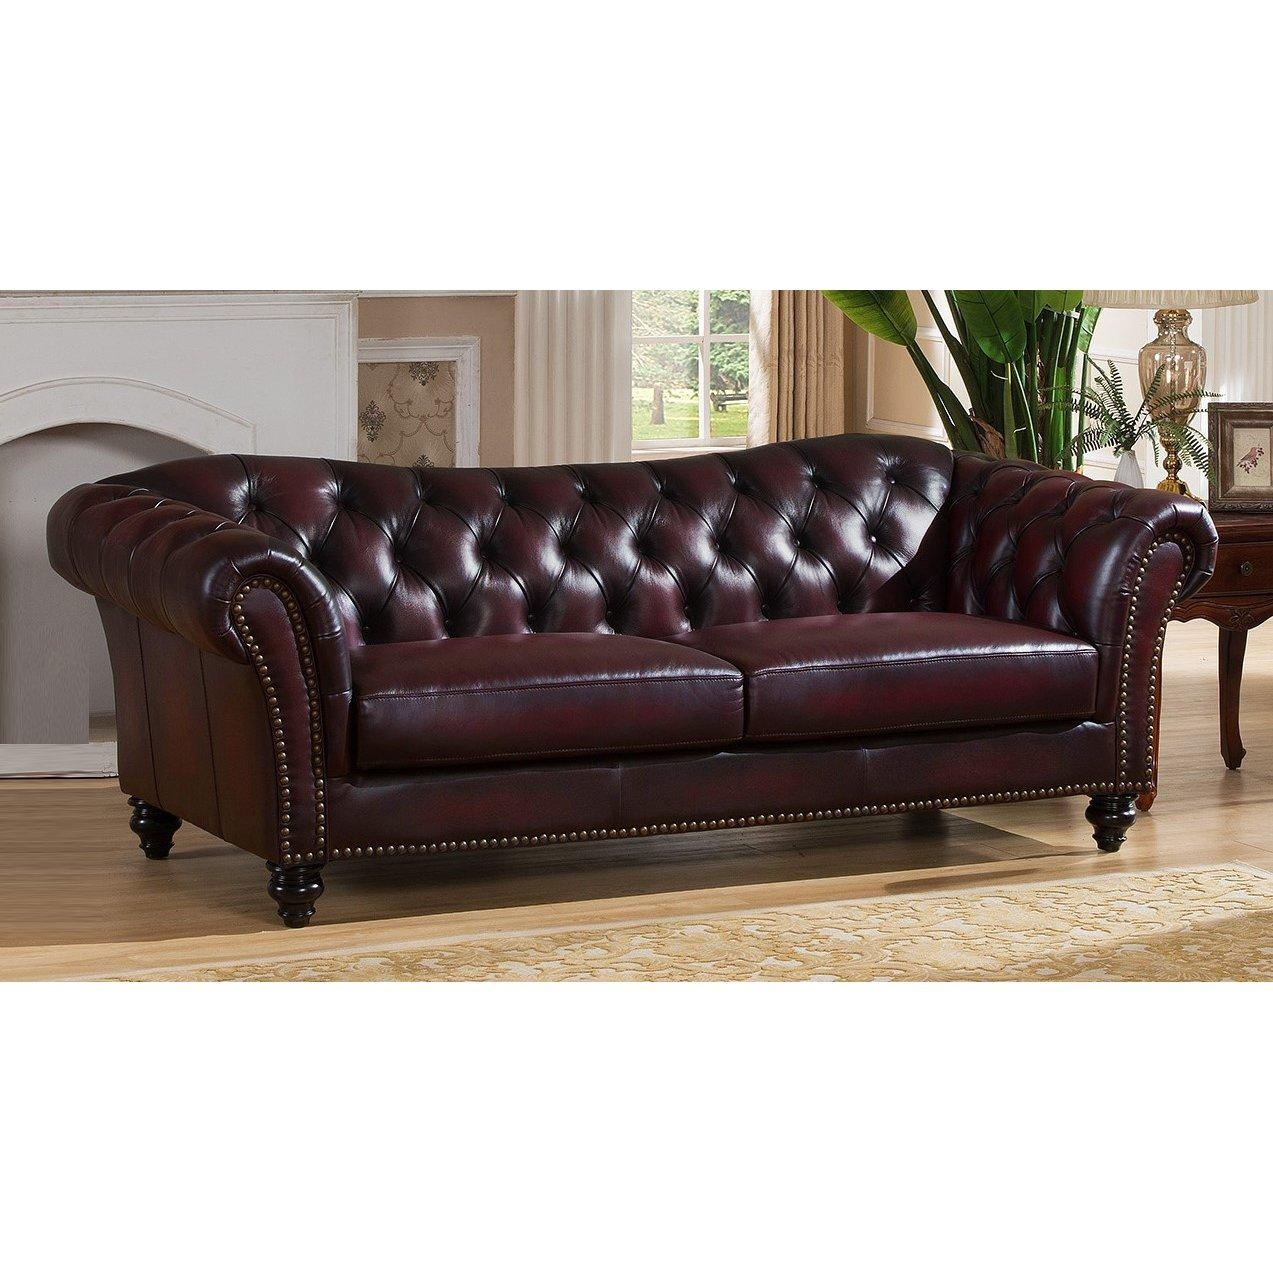 Storage Canterbury Leather Chesterfield Style 3 Seater Sofa Best In Canterbury Leather Sofas (View 2 of 20)